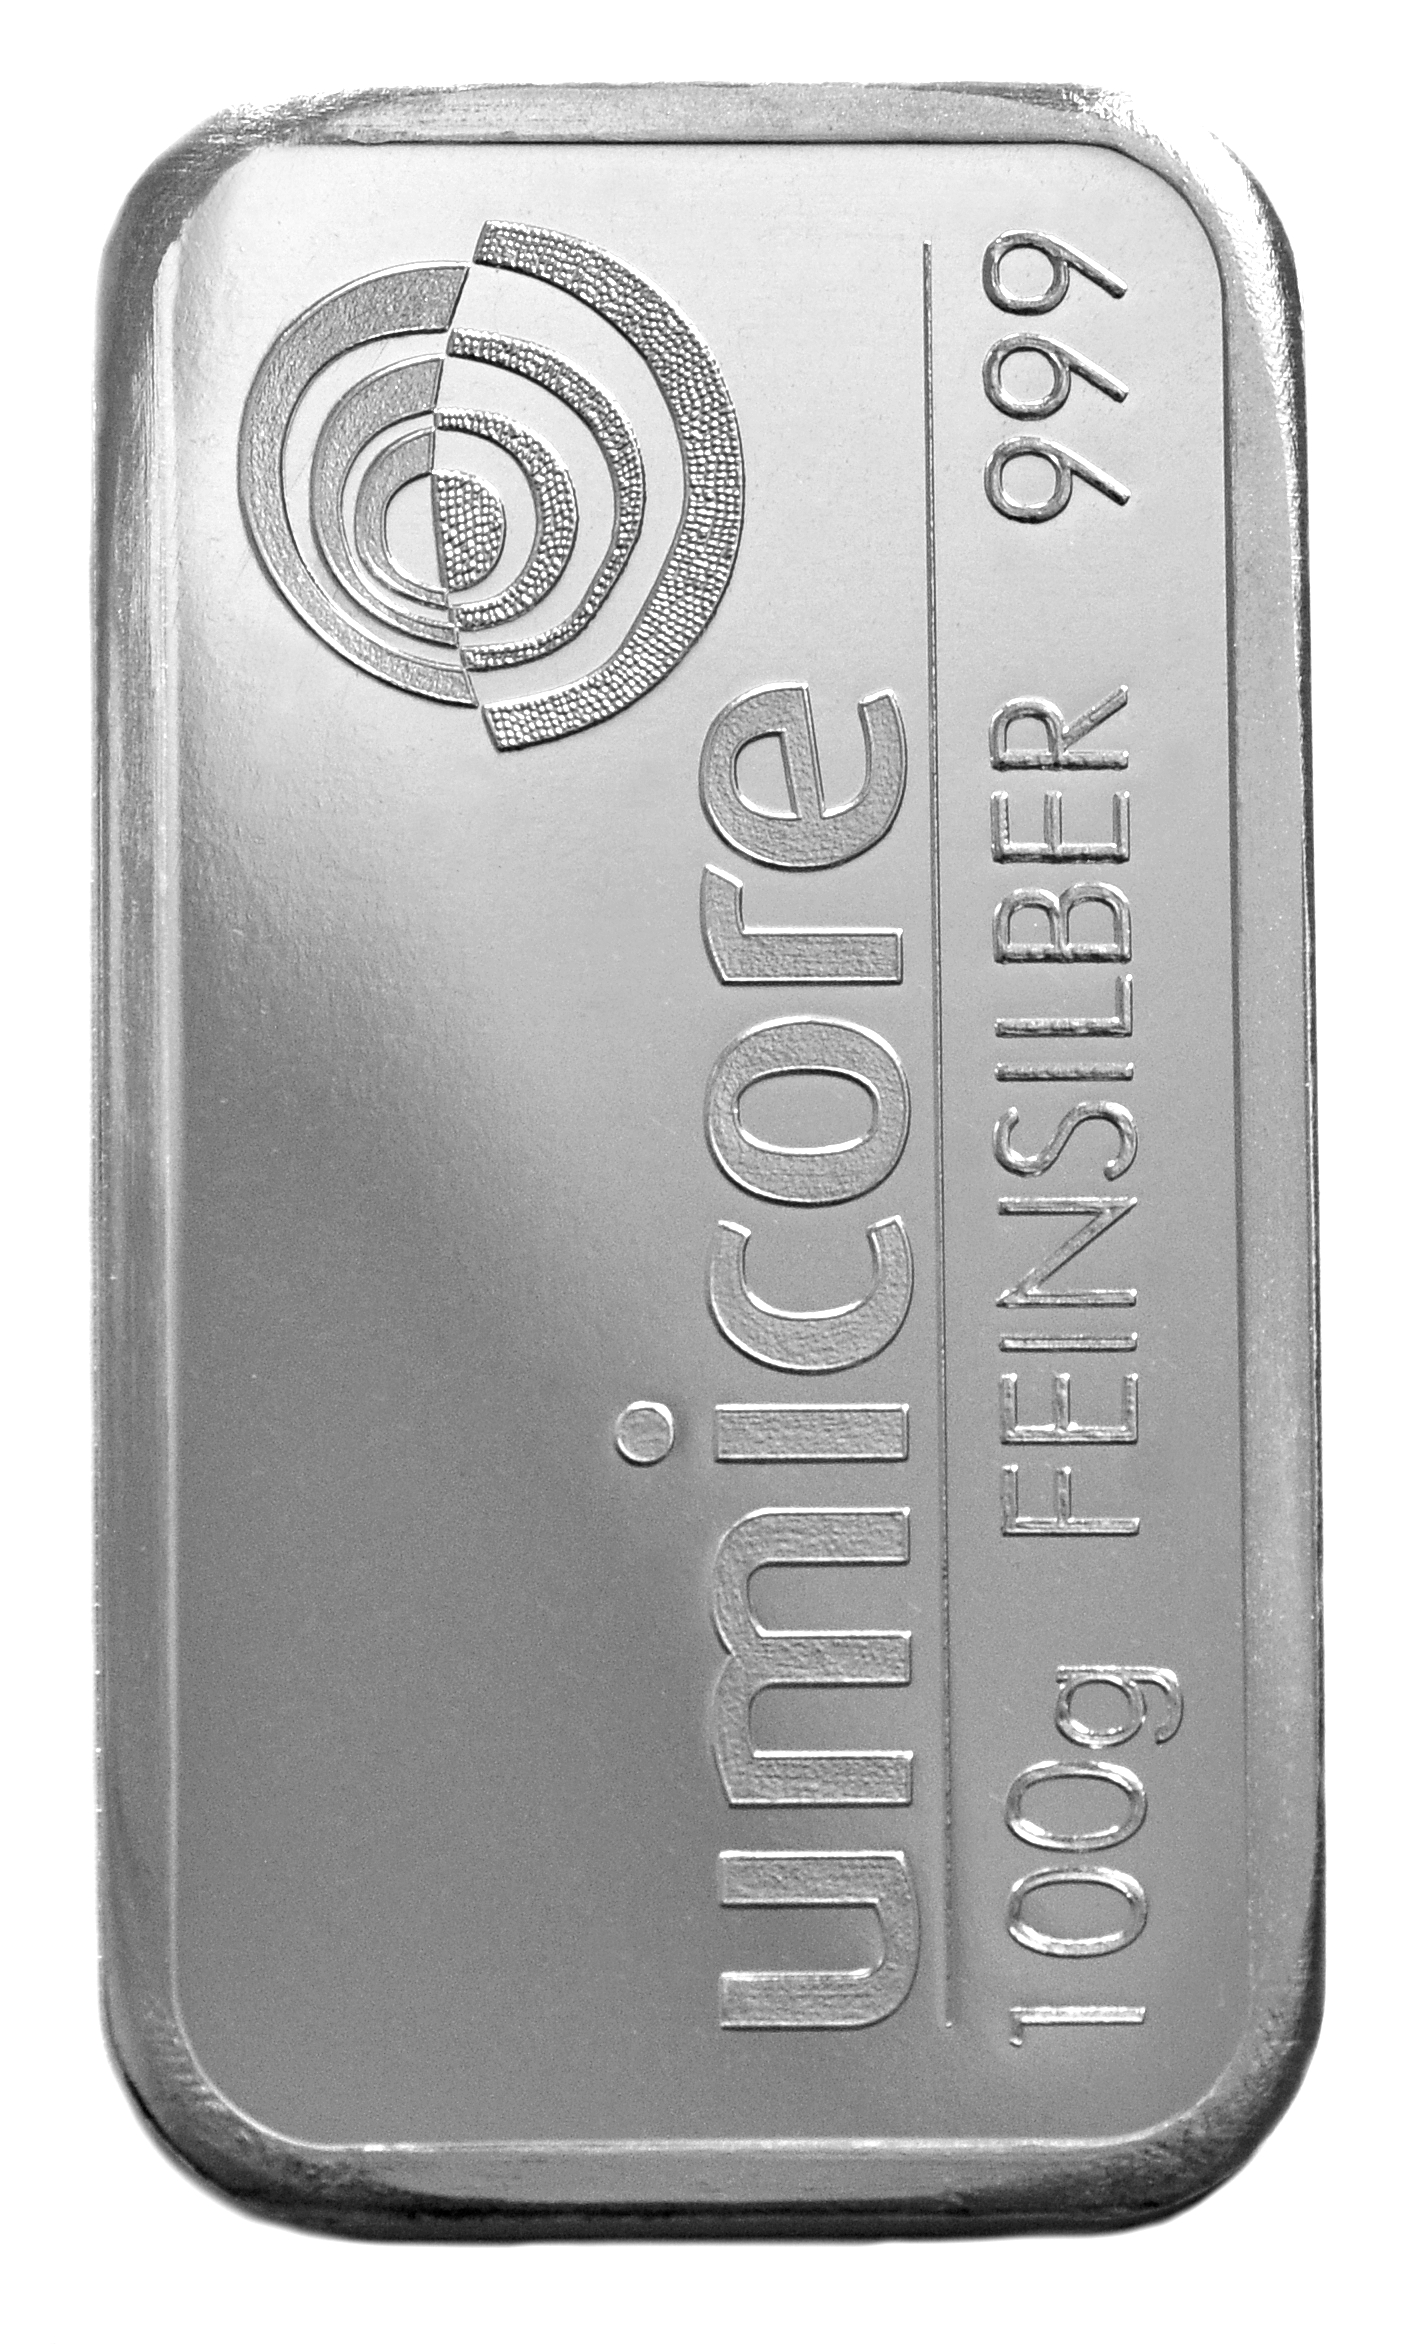 Buy 100 Gram Silver Bars From Bullionbypost Uk From 163 71 86